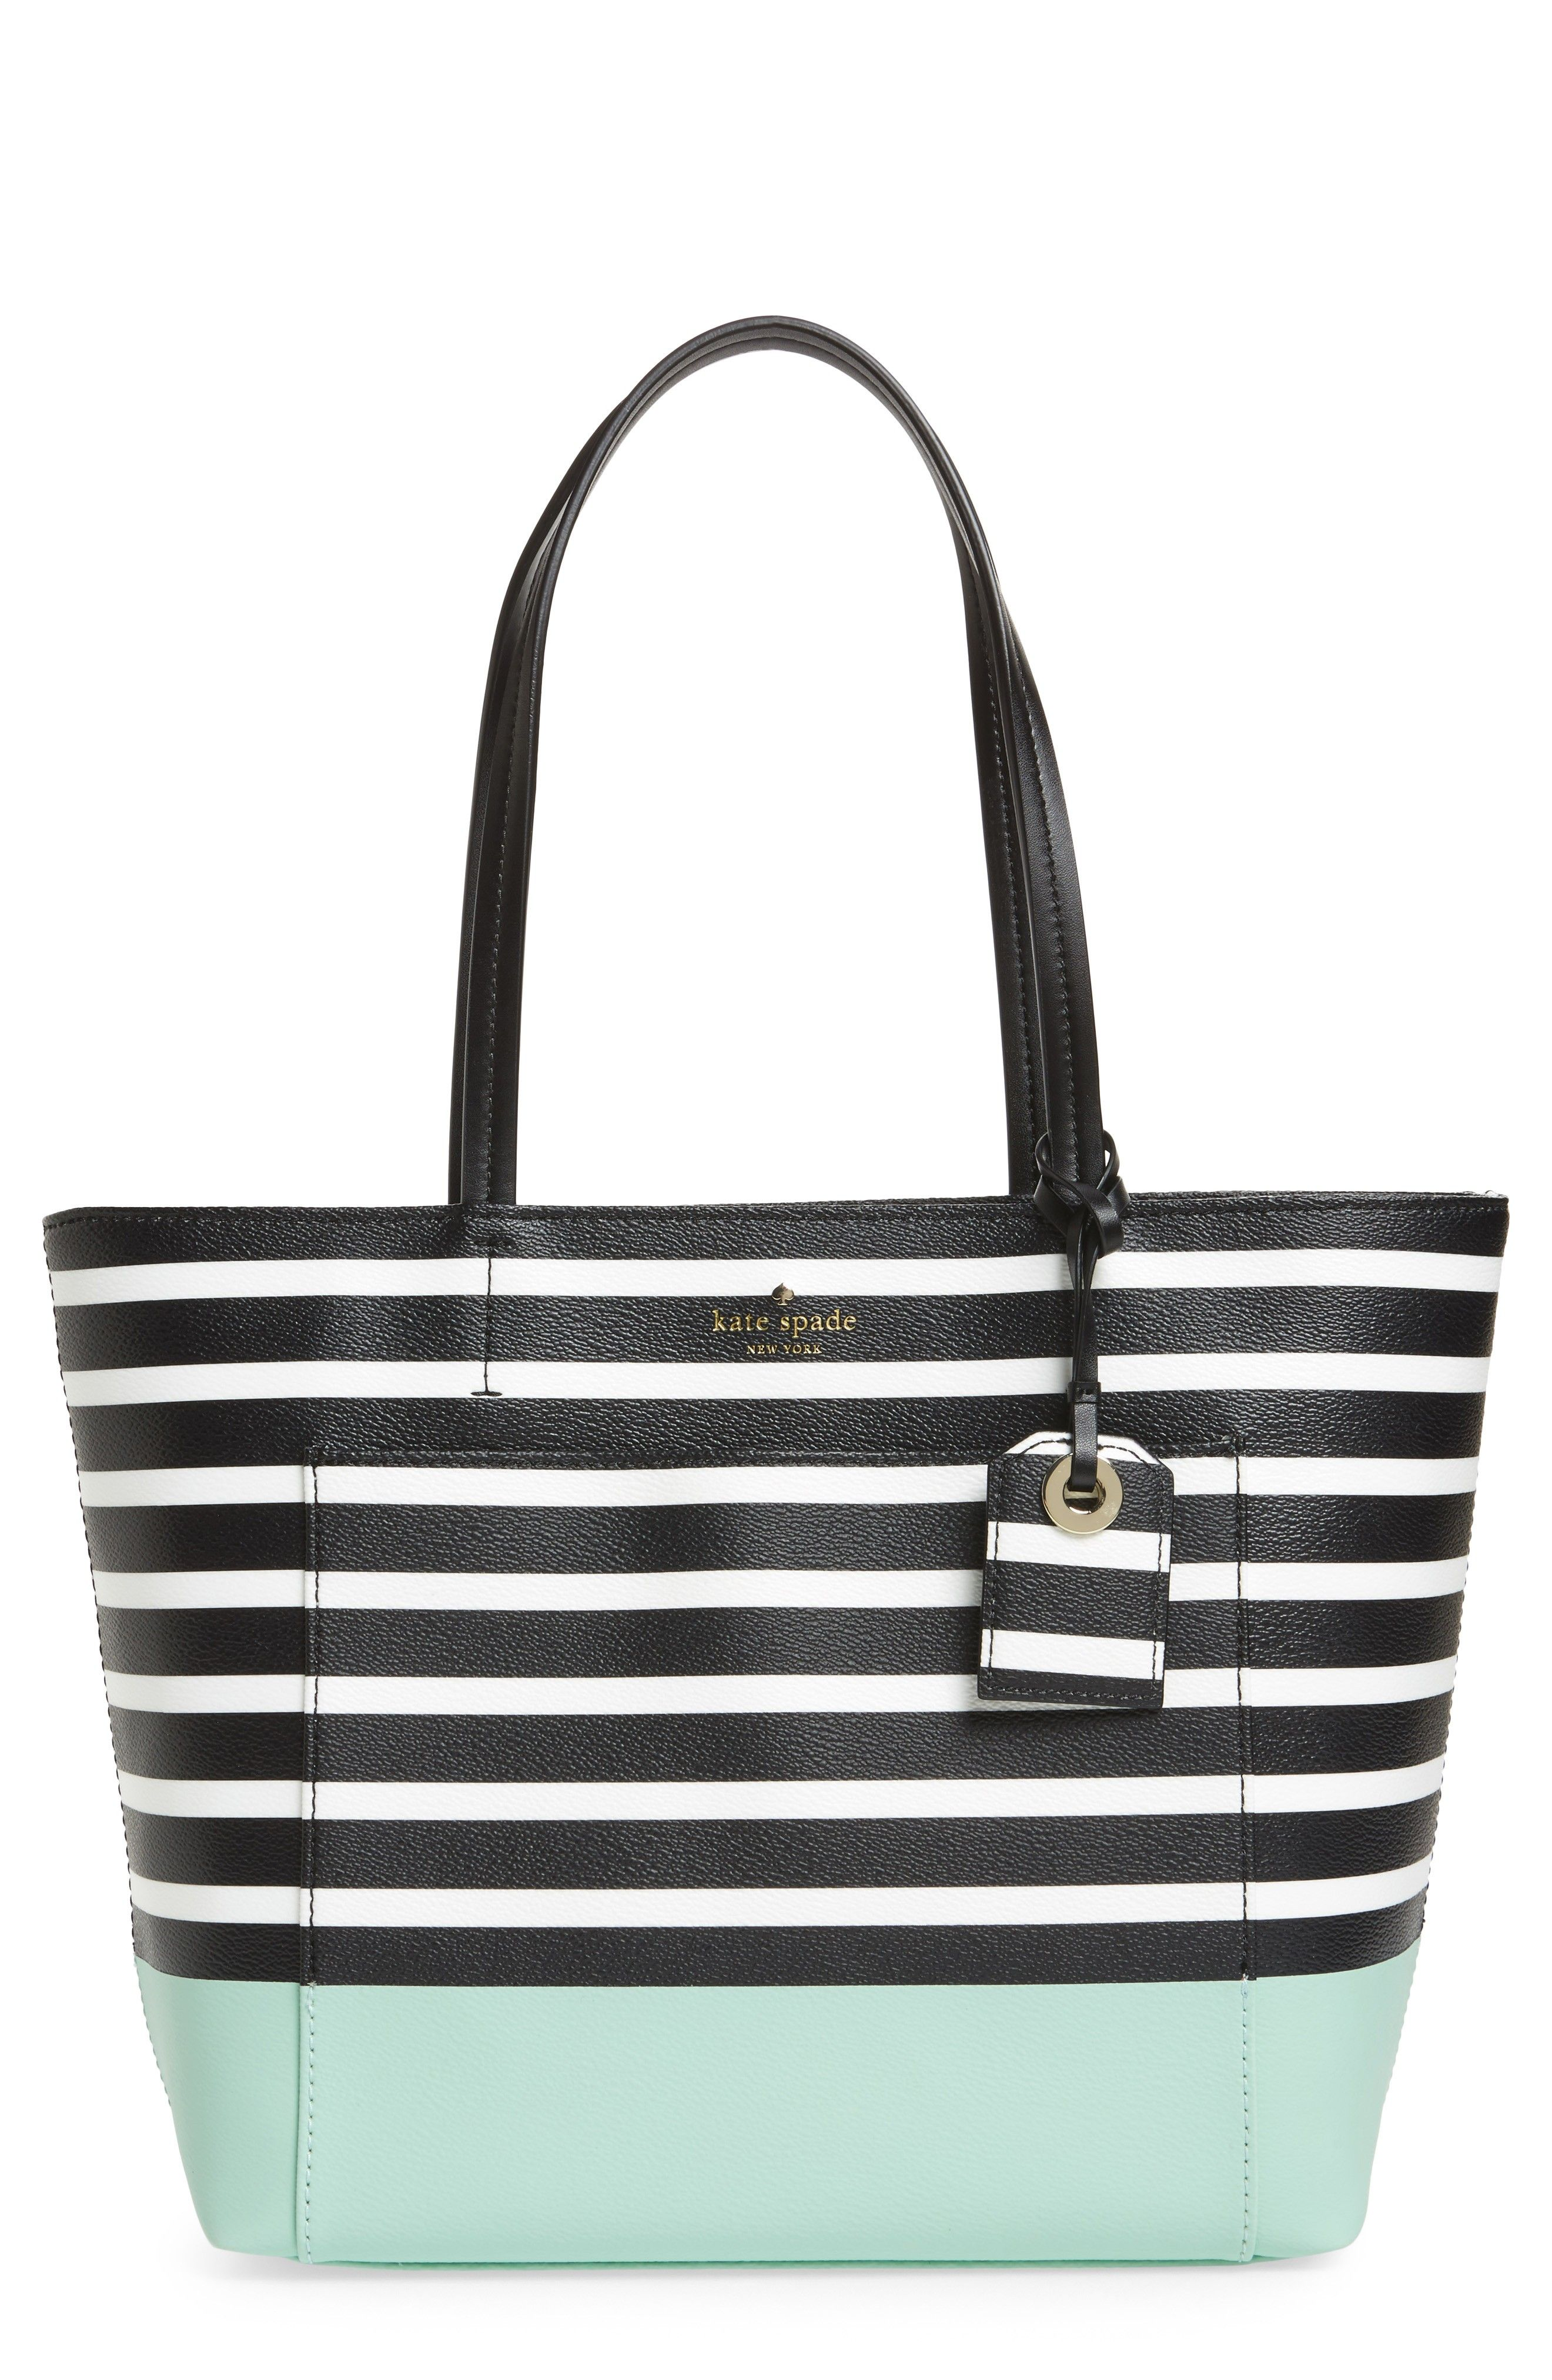 3ef700d34 Loving this striped tote with mint bottom. Loving this striped tote with  mint bottom Michael Kors Bag, Kate Spade ...